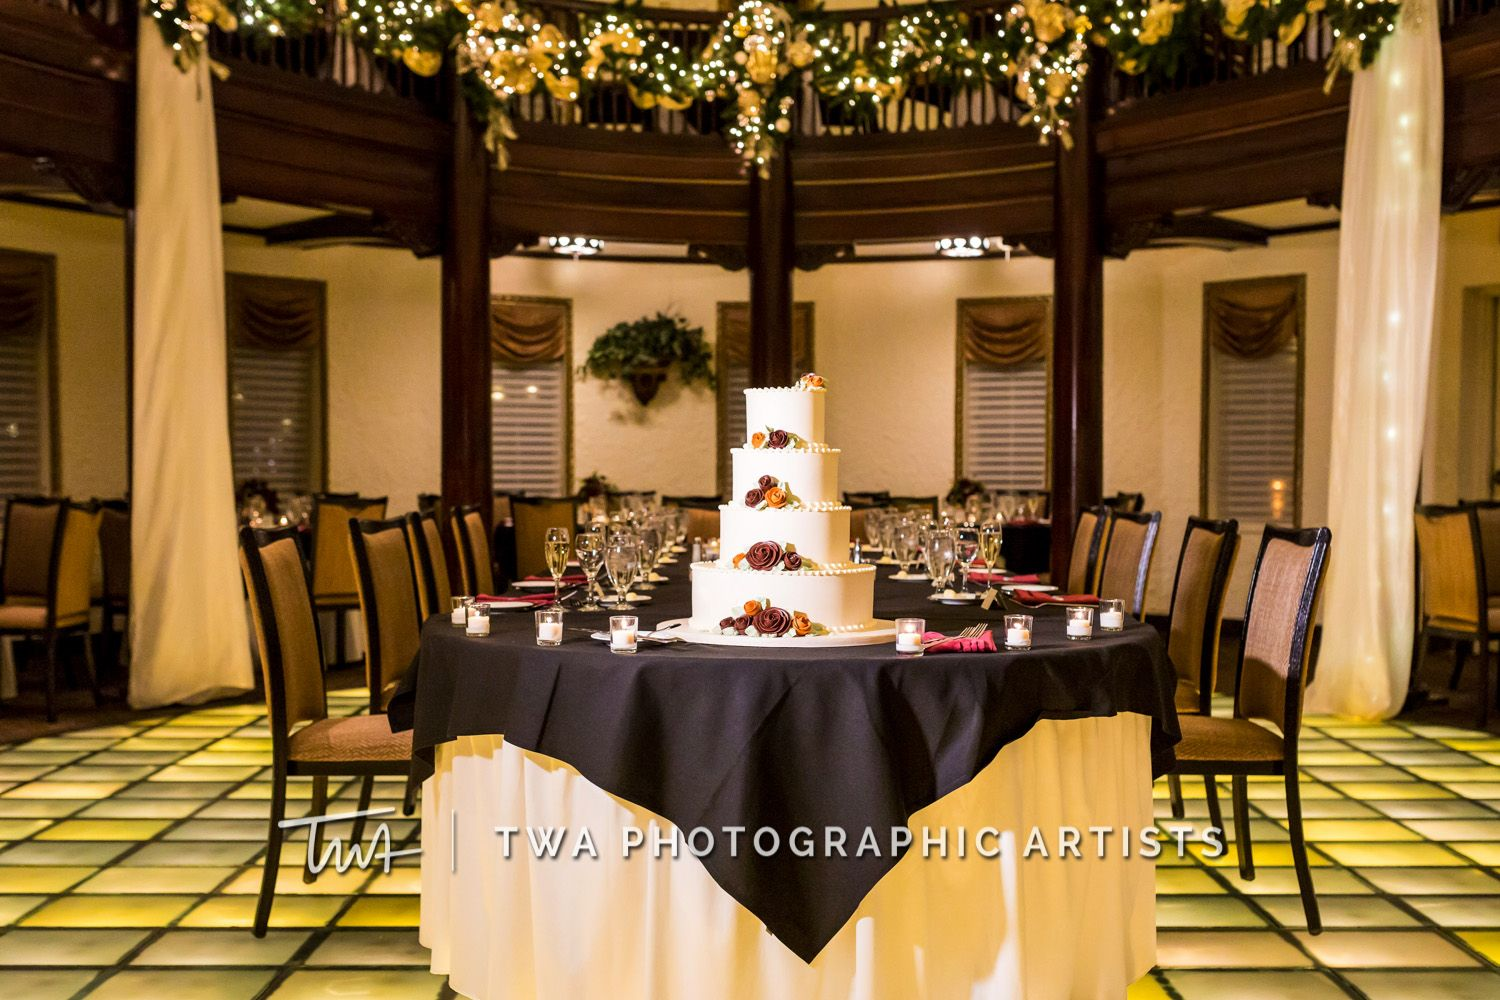 Twa Weddings At Hotel Baker Click The Picture To Visit Our Website Chicago Wedding Photographic Artist Twa